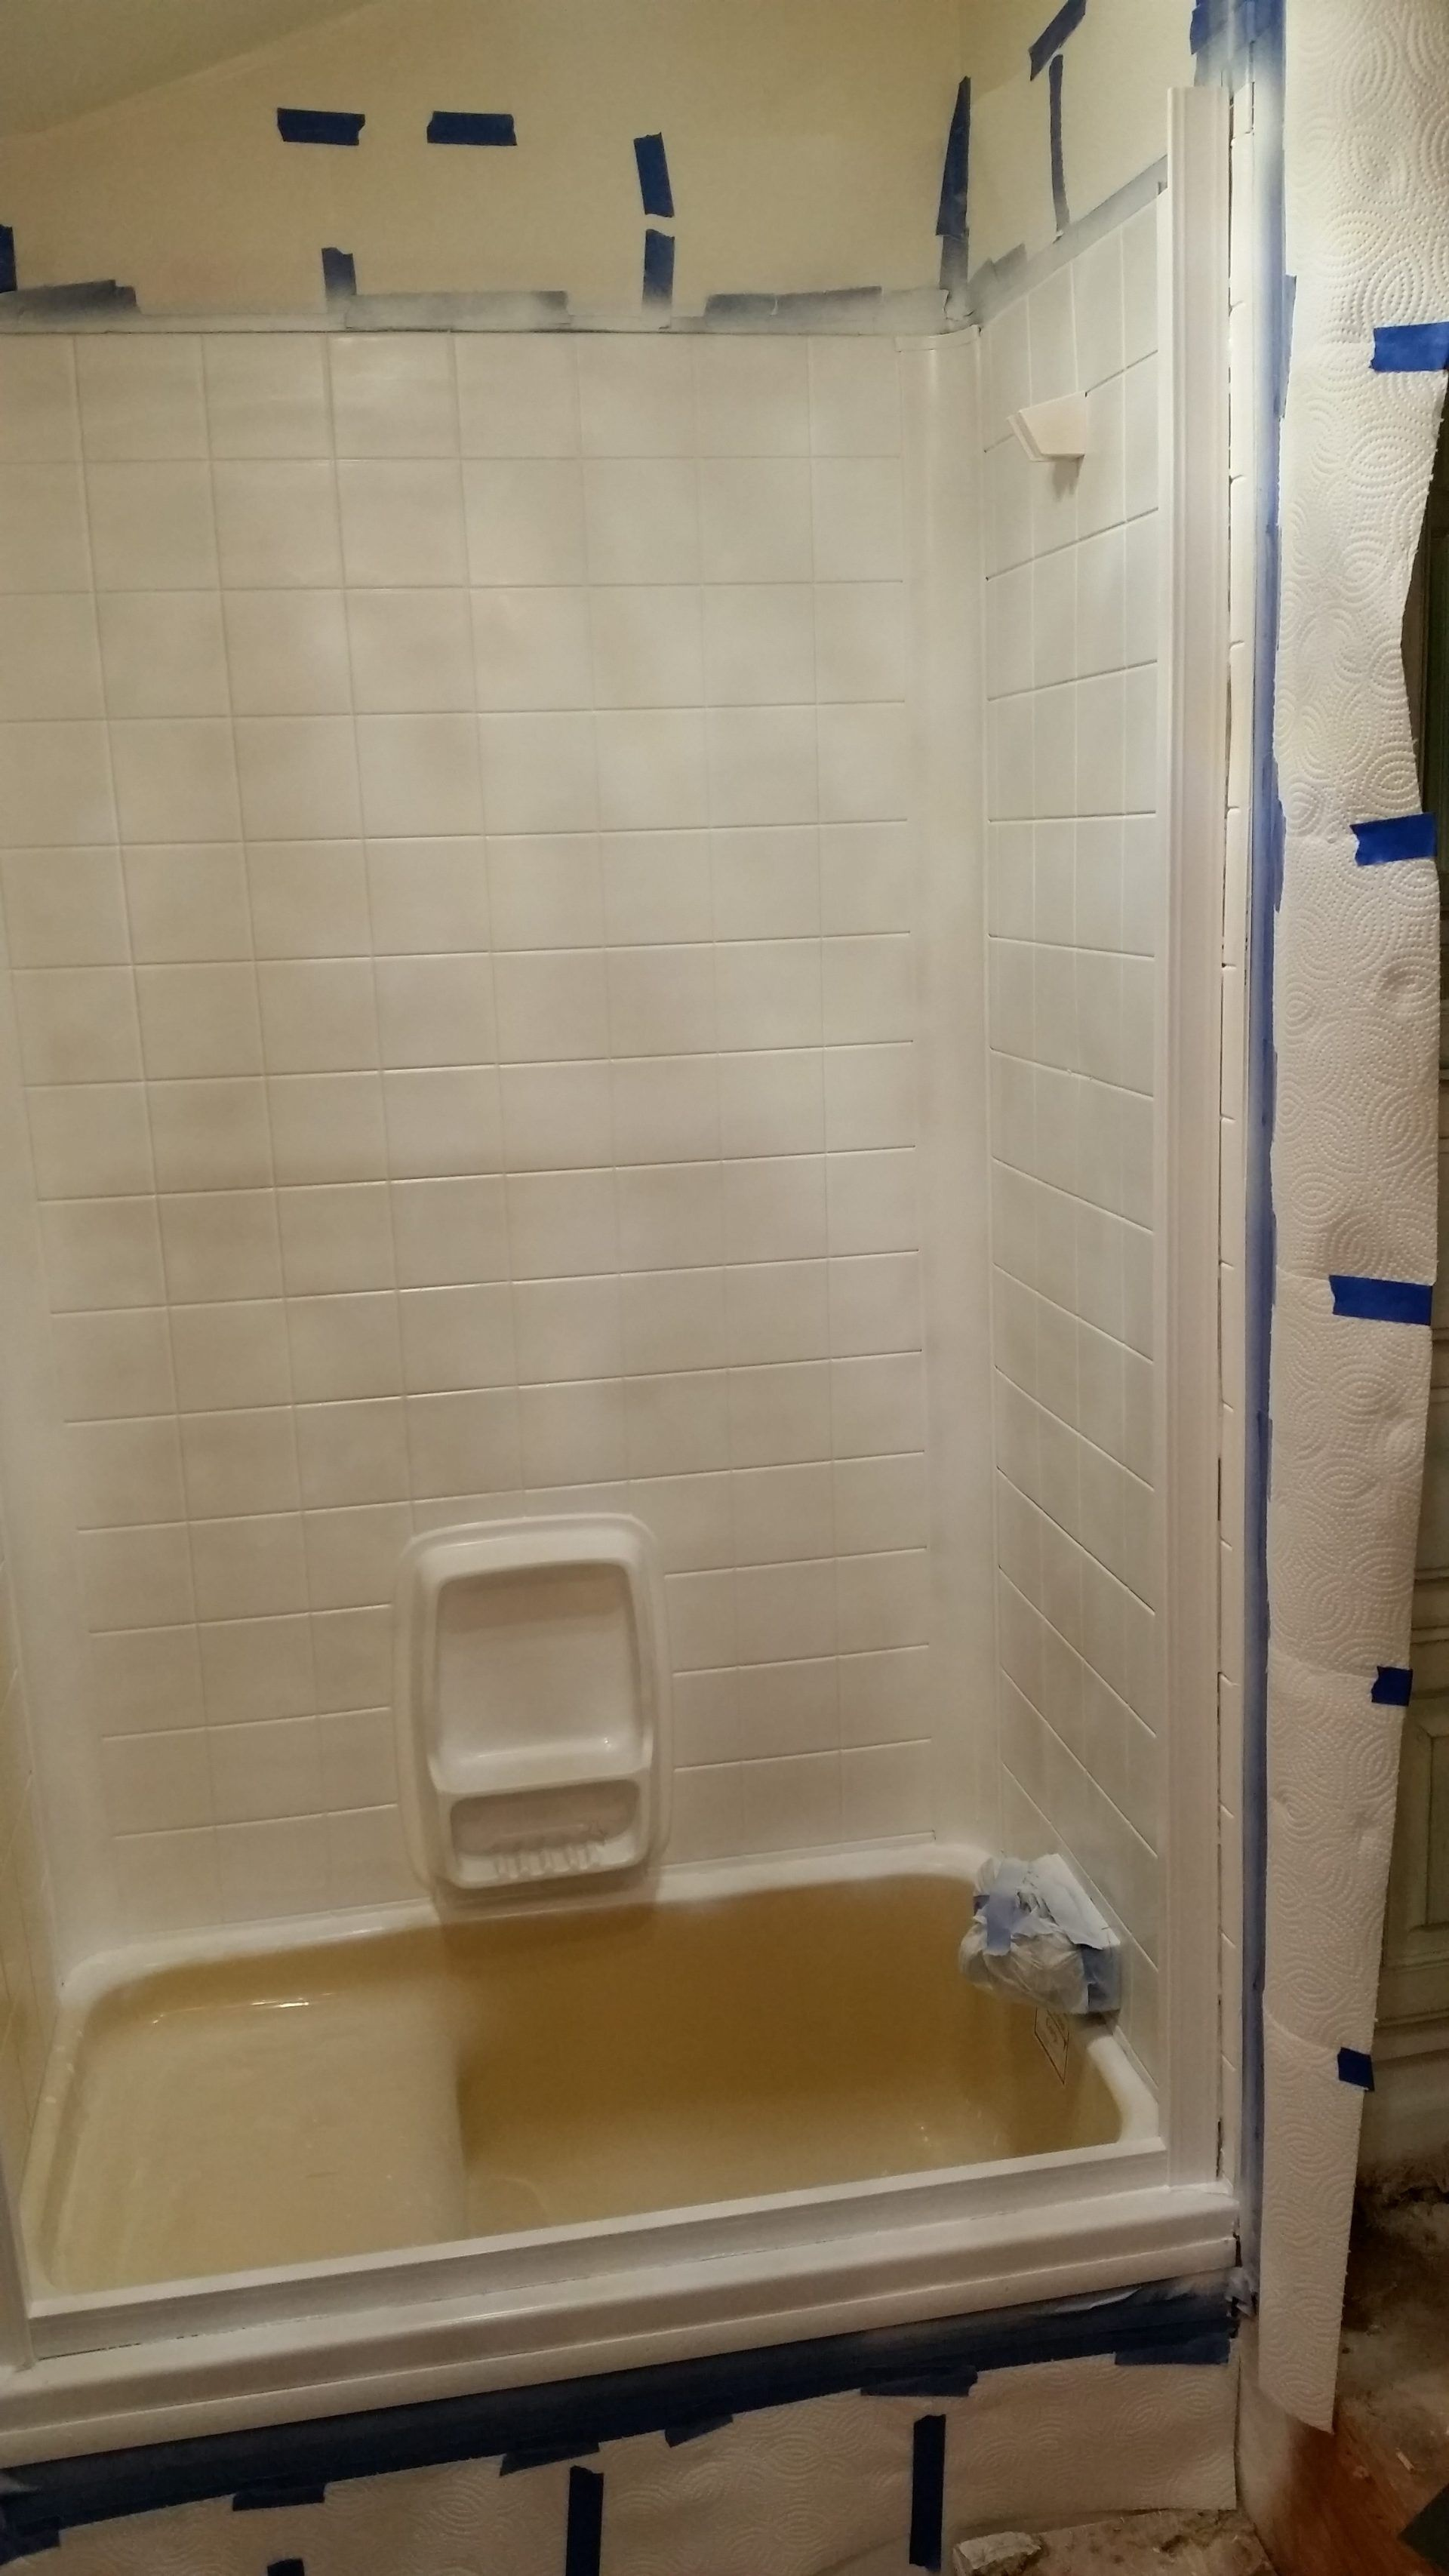 RV Bathroom Remodel - The Shower - Nurse Barb Blog - Before and ...